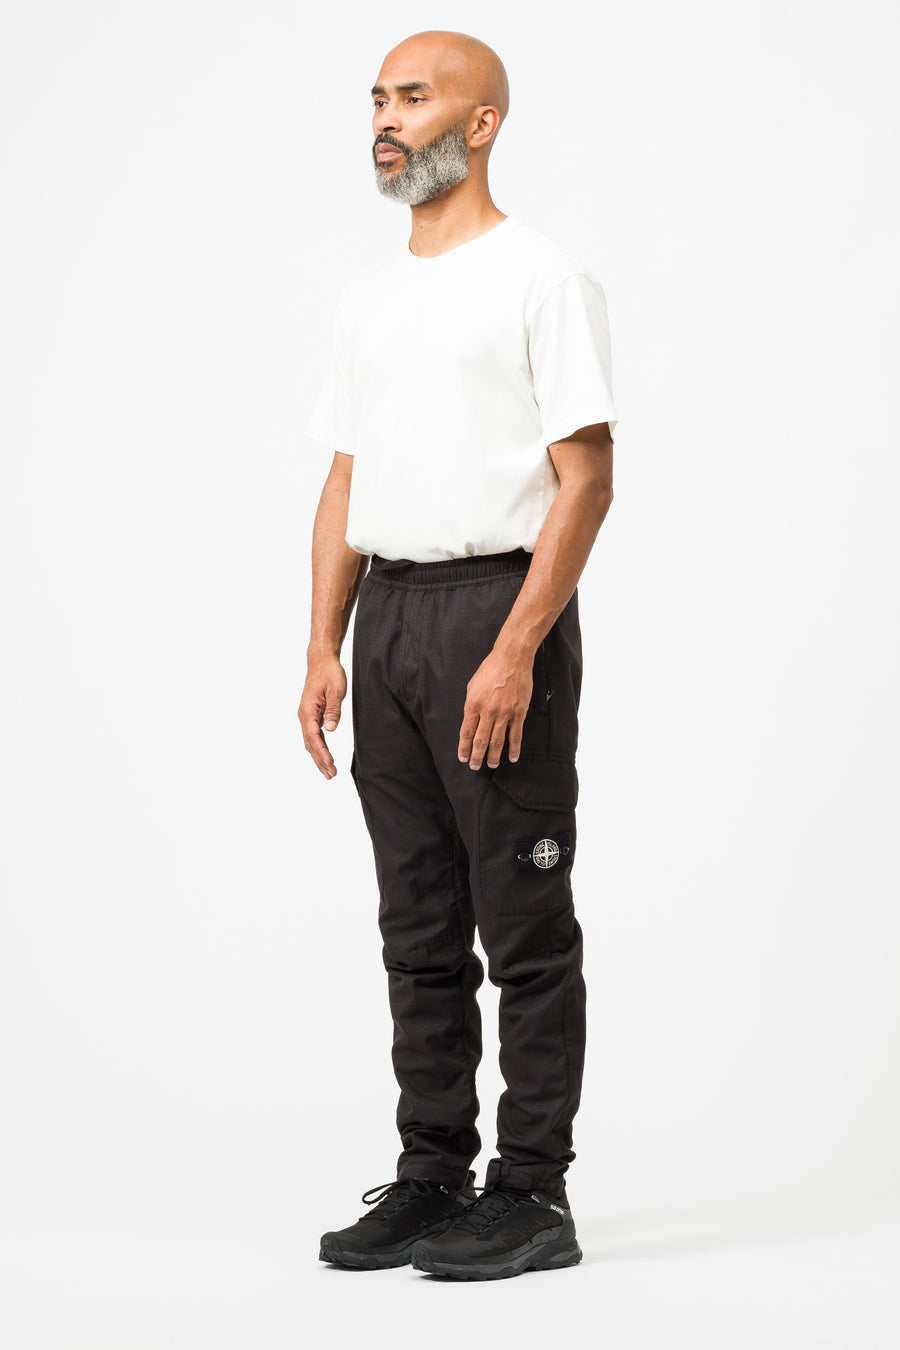 Stone Island 32398 Reflective Weave Ripstop Pant in Black - Notre